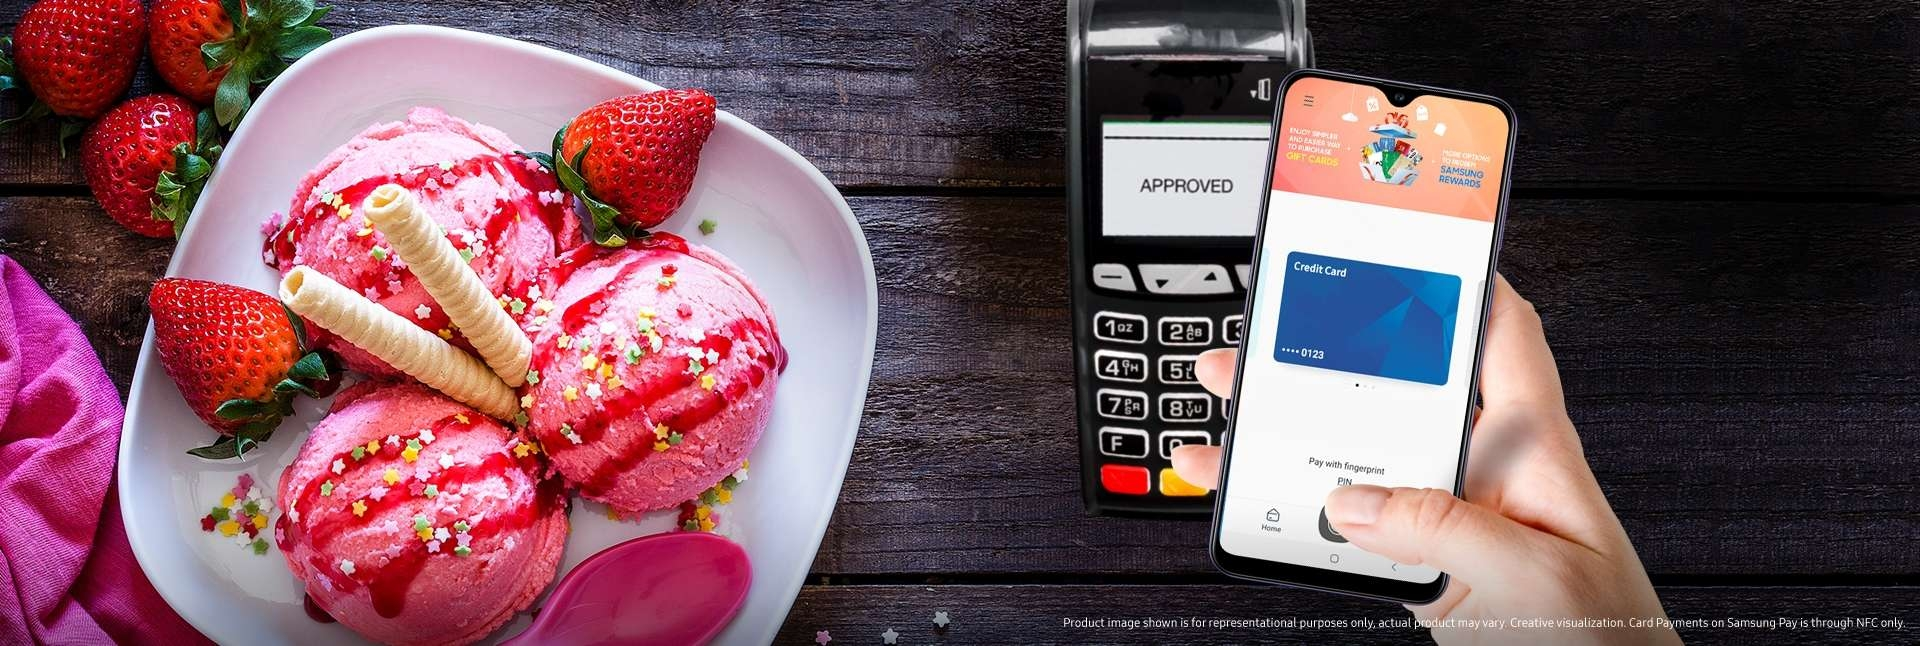 Samsung Galaxy A30s with Samsung Pay